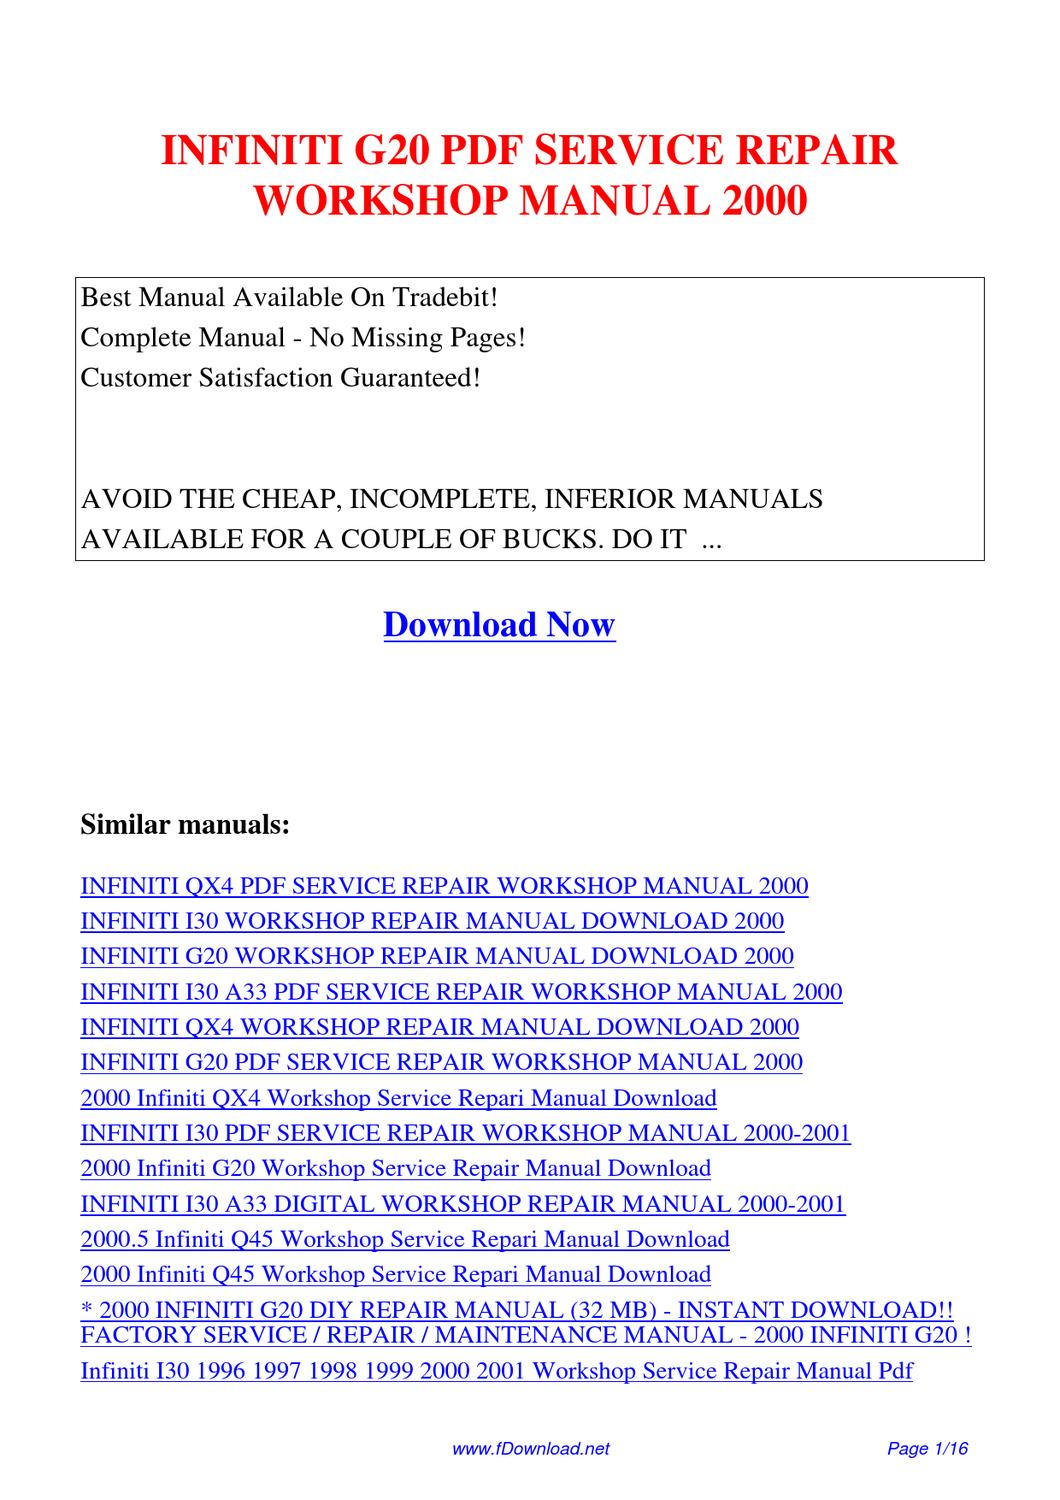 Service Manual Owners 2012 Infiniti G Auto Electrical G20 Repair Workshop 2000 By Fu